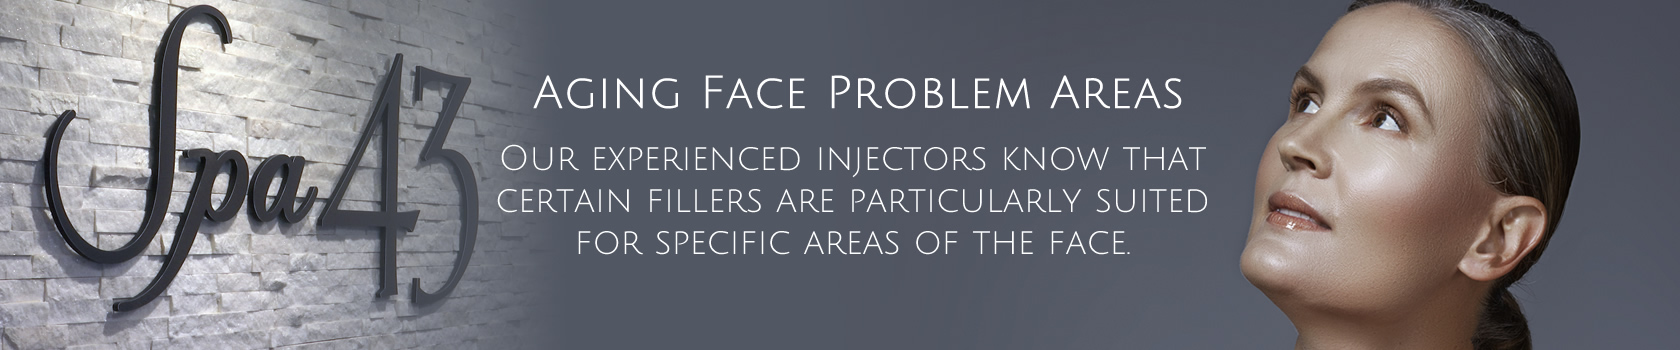 Facial Fillers and Botox by experienced injectors Clinton Township